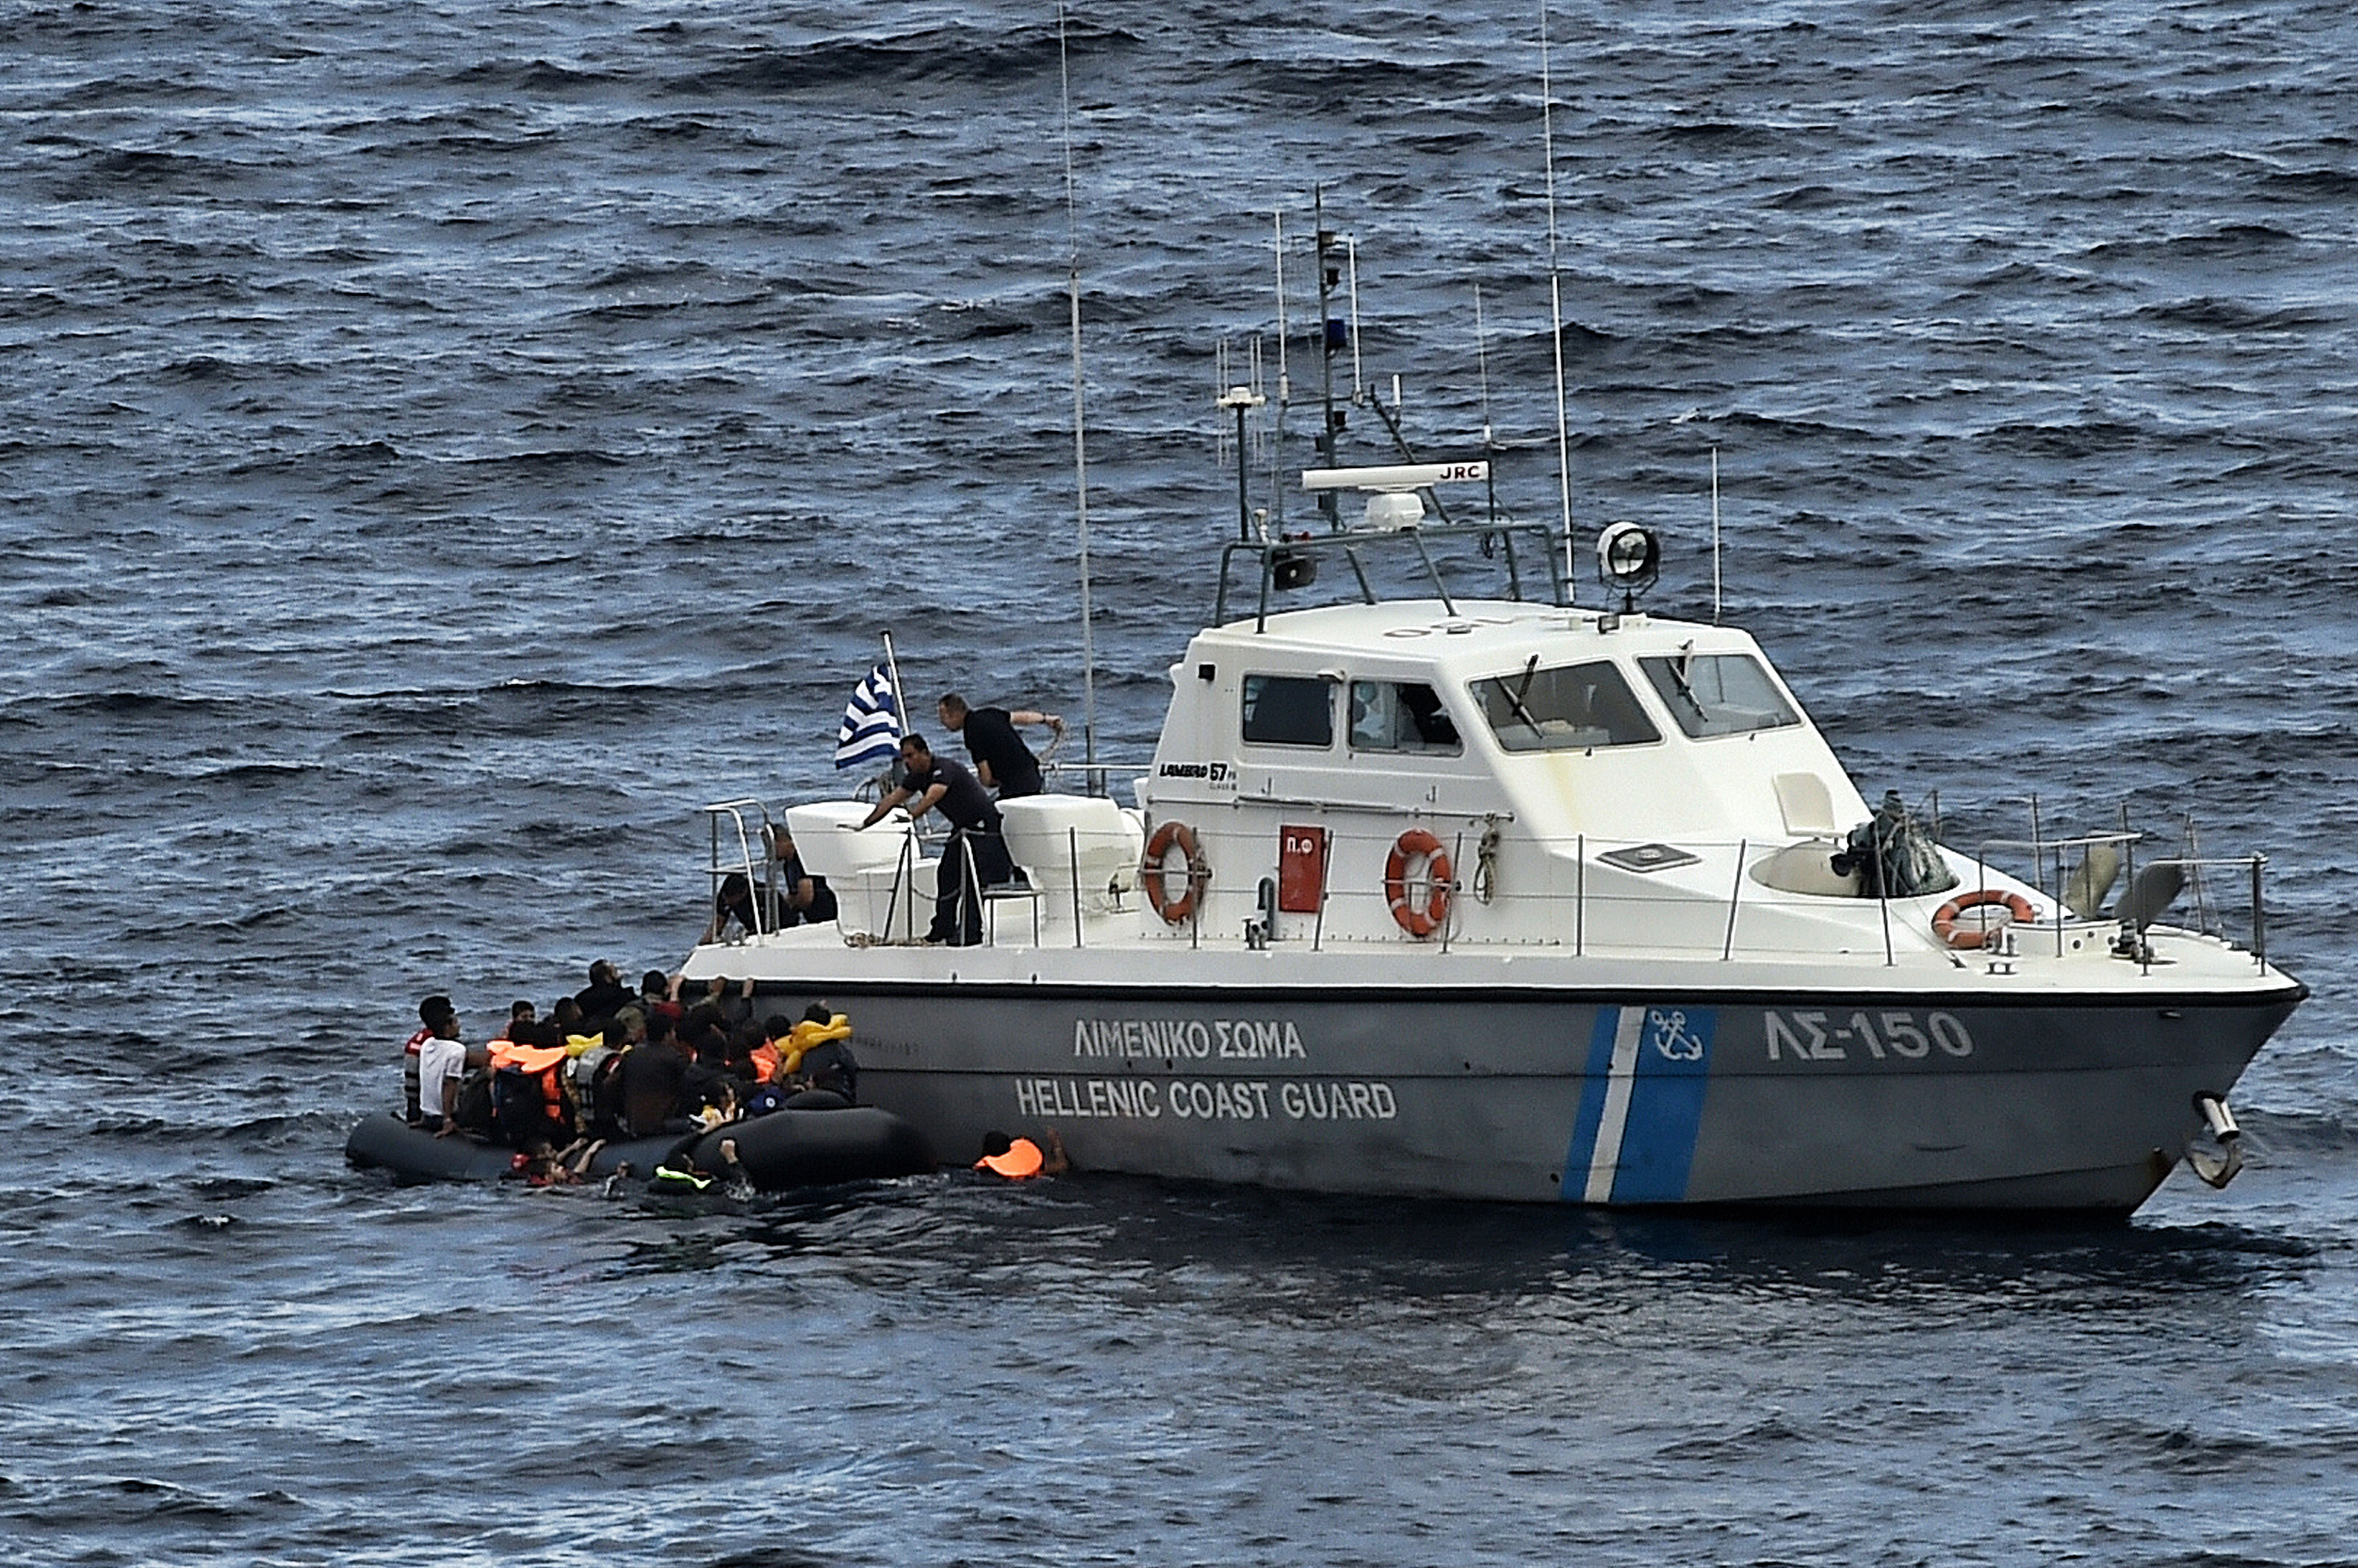 Hellenic coast guard personnel rescue refugees and migrants on a dinghy as they try to reach the Greek island of Lesbos while crossing the Aegean sea from Turkey on September 29, 2015